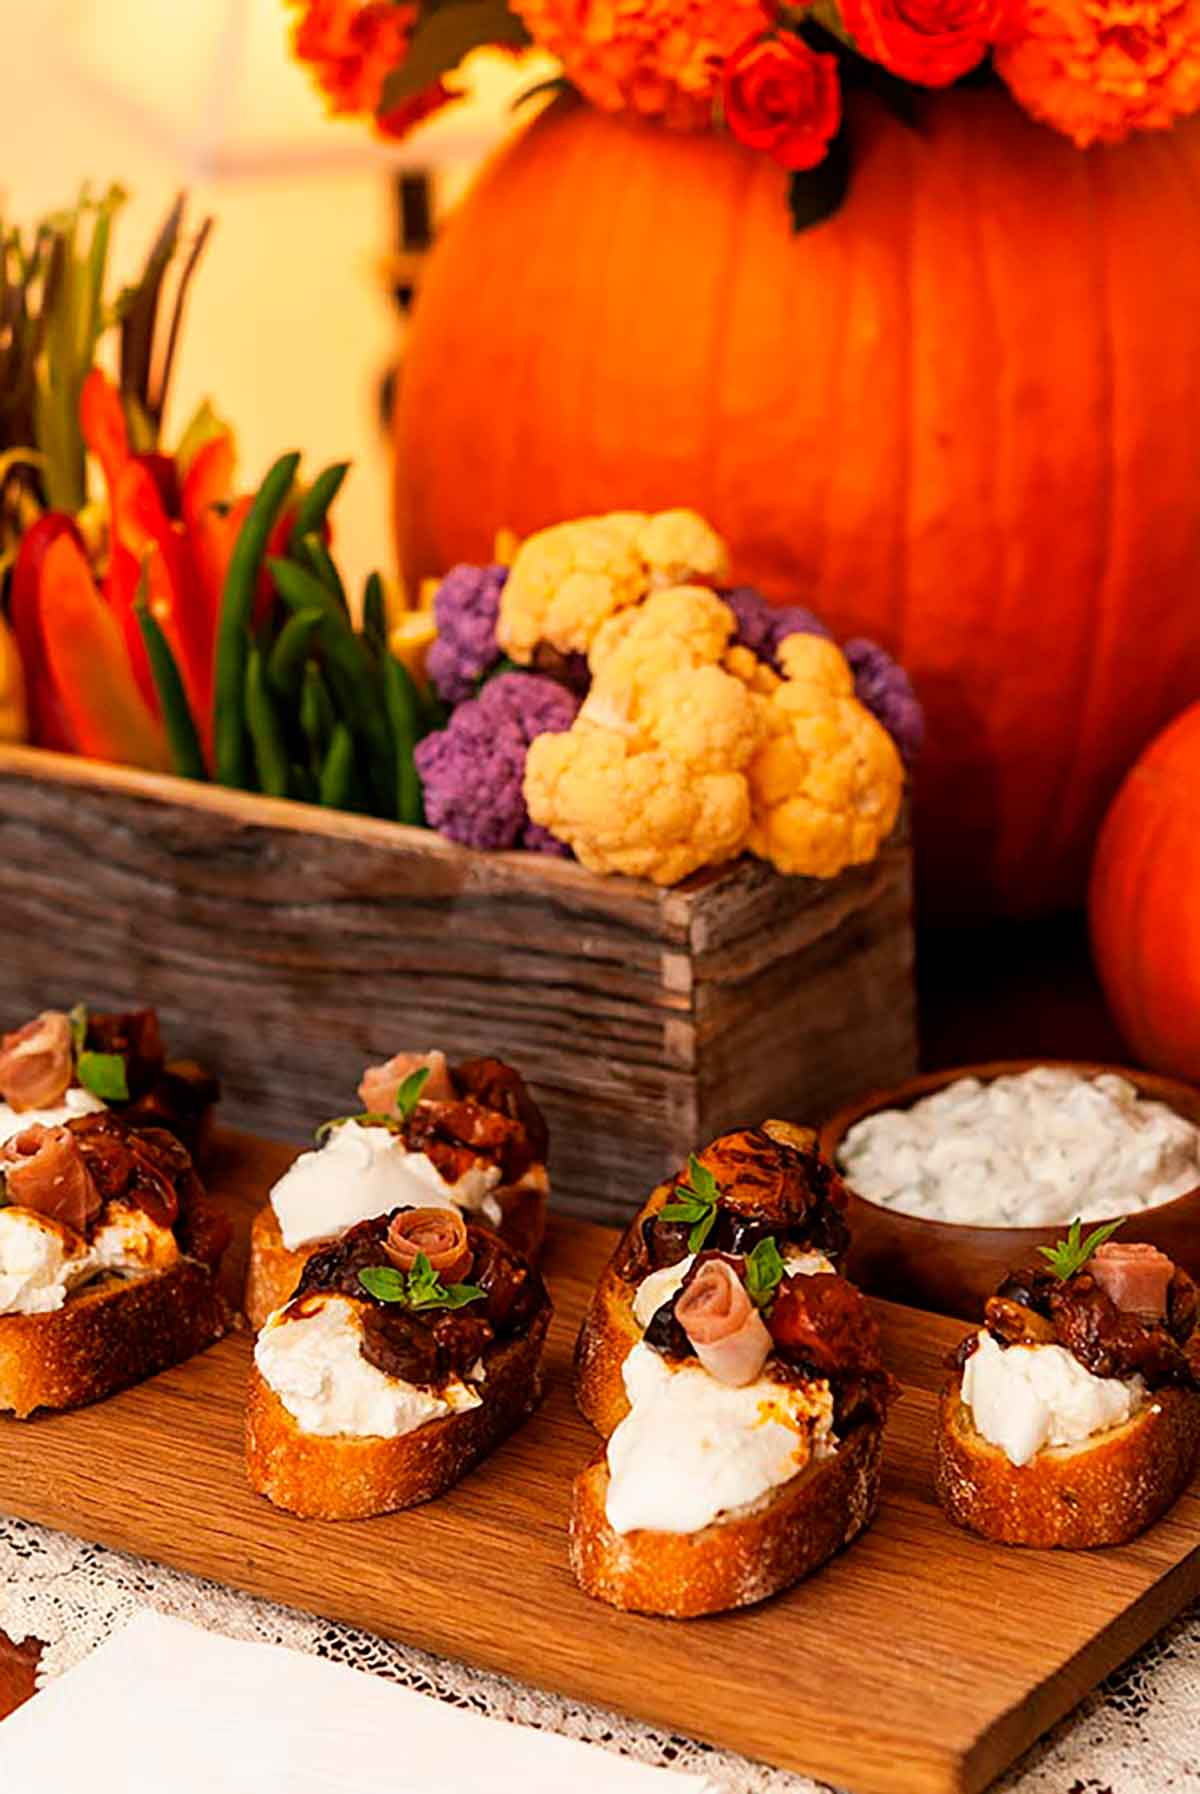 7 bruschetta, garnished with prosciutto roses on a wooden board and a flower-box crudités in front of a pumpkin.